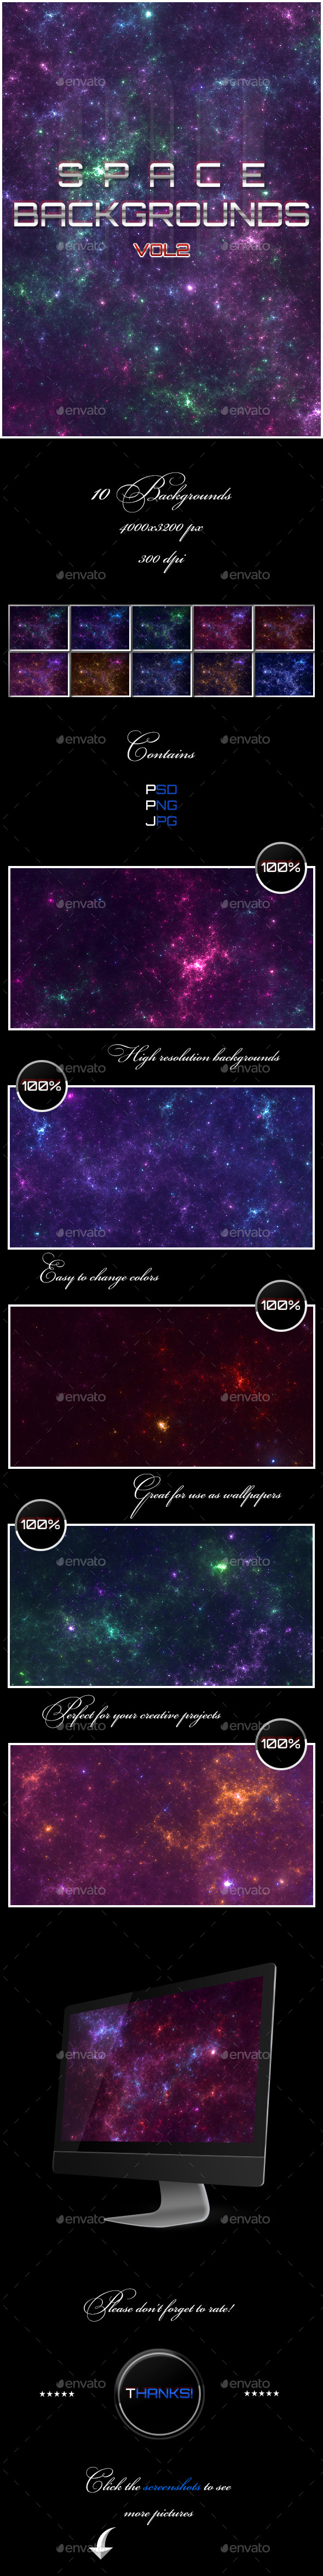 GraphicRiver Space Backgrounds Vol2 11643952